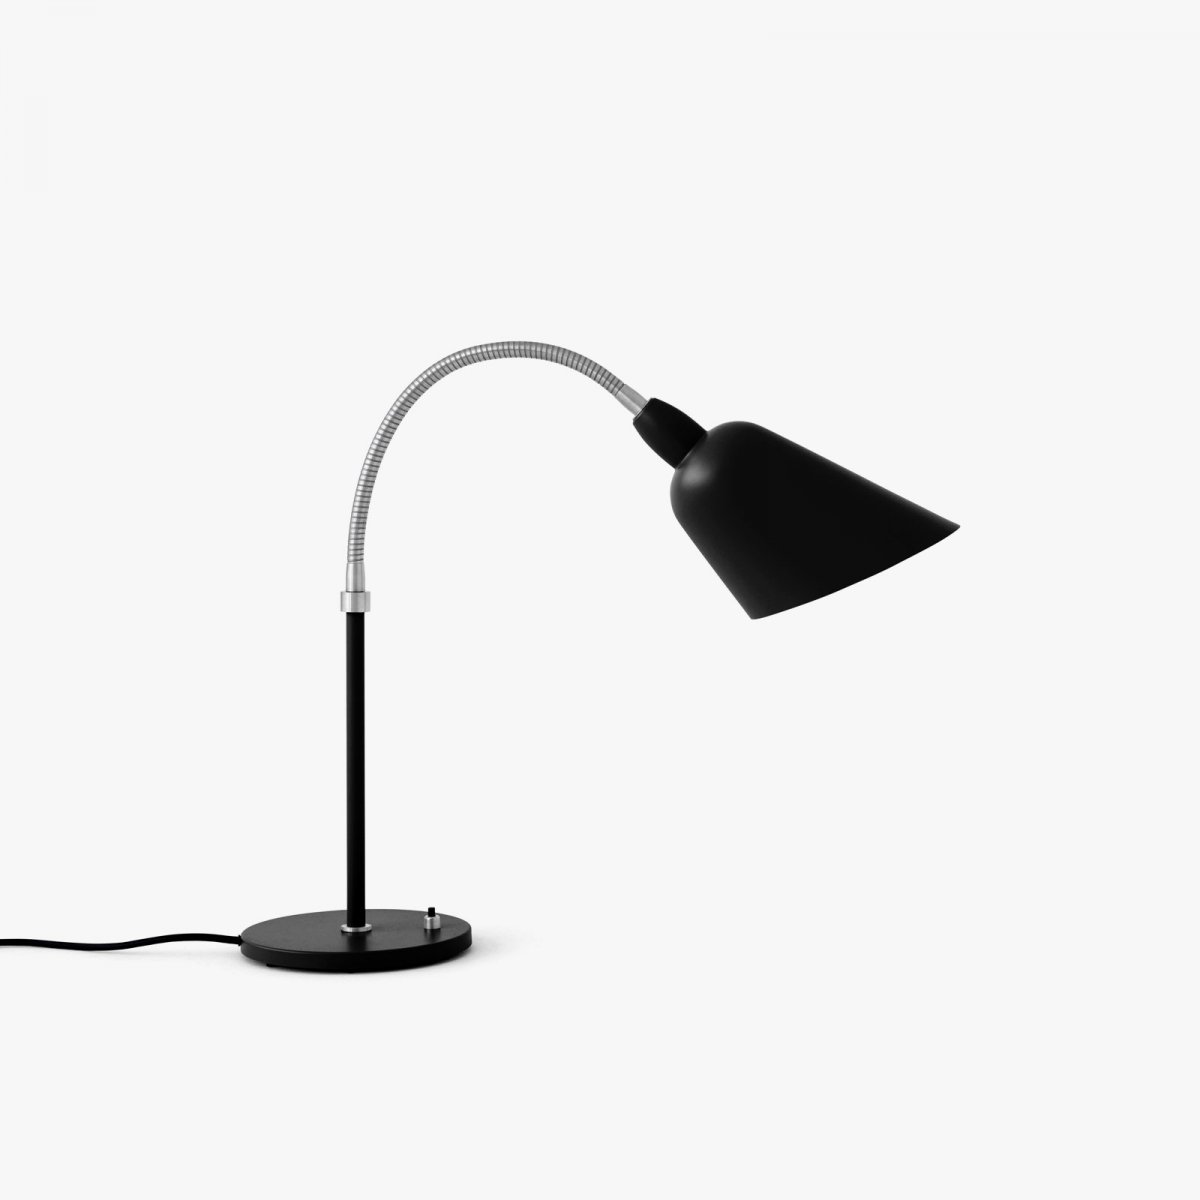 Bellevue AJ8 work lamp, black + steel.